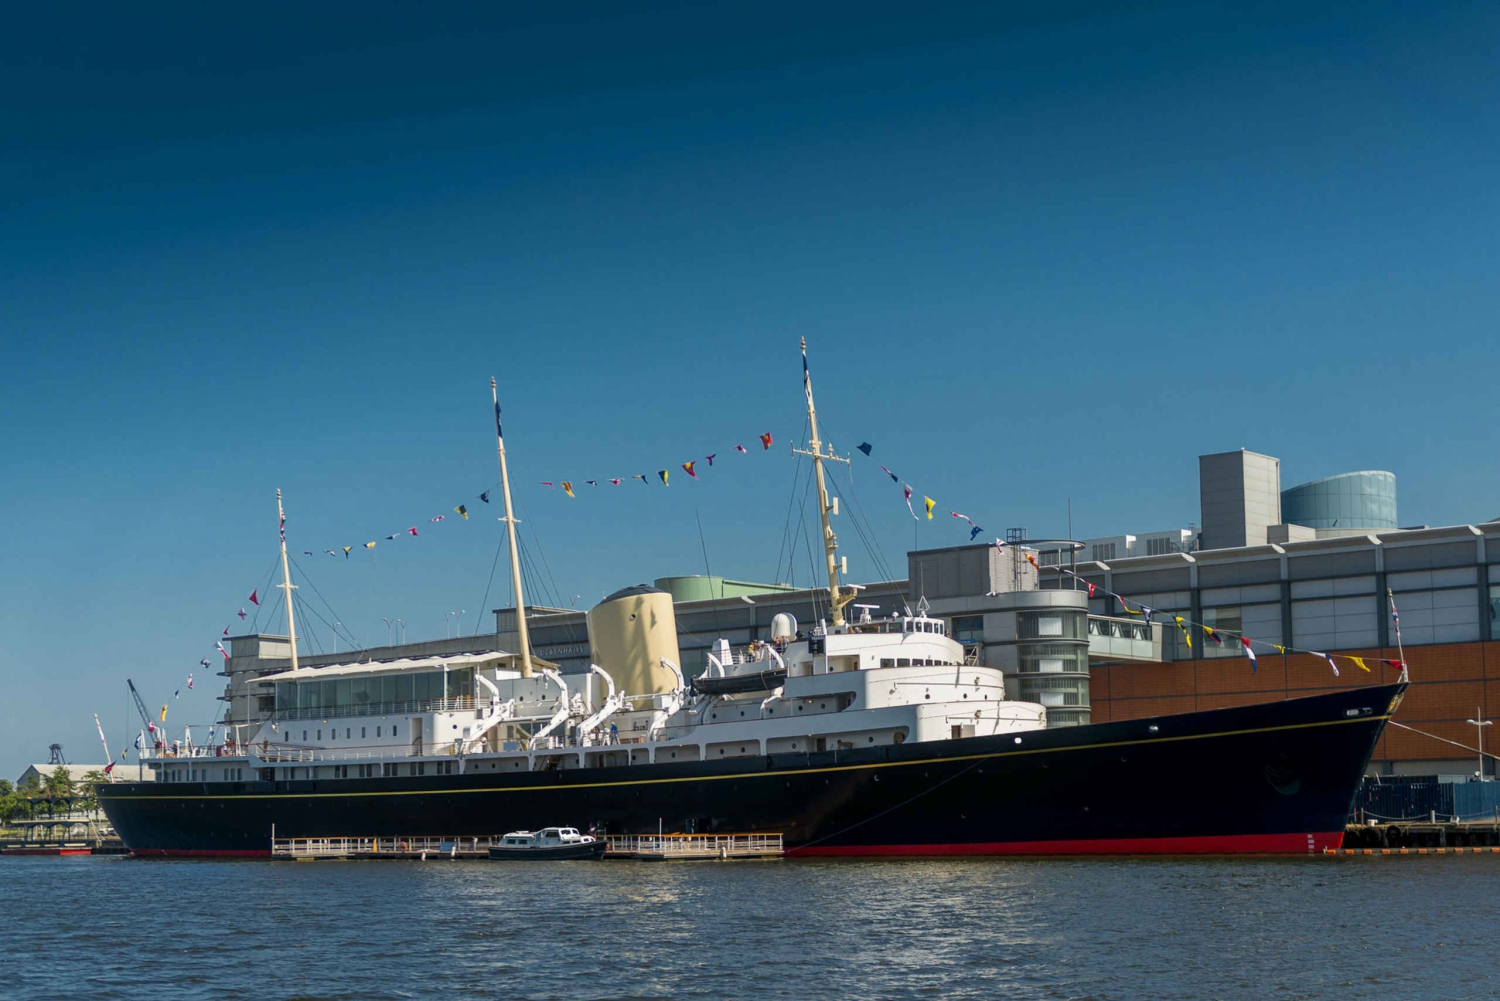 The Royal Yacht Britannia Ticket & Audio Guide